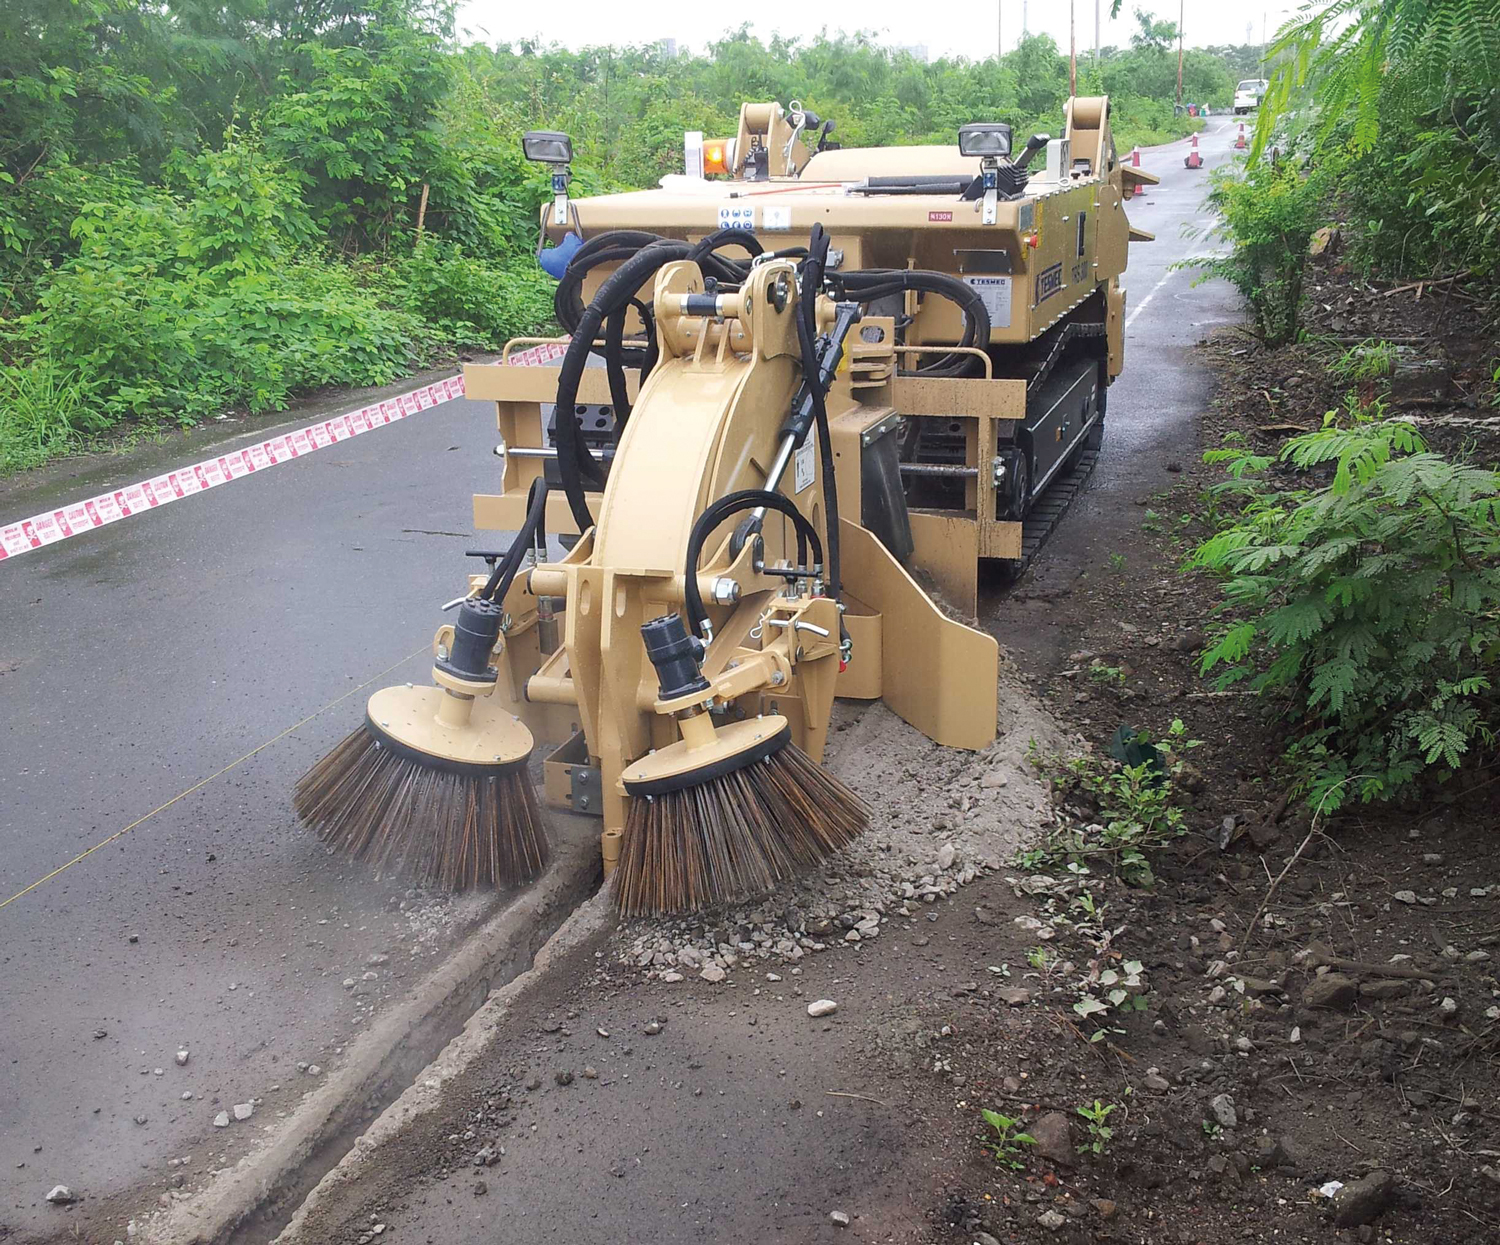 Tesmec 300 Rocksaw Trencher for narrow trenching